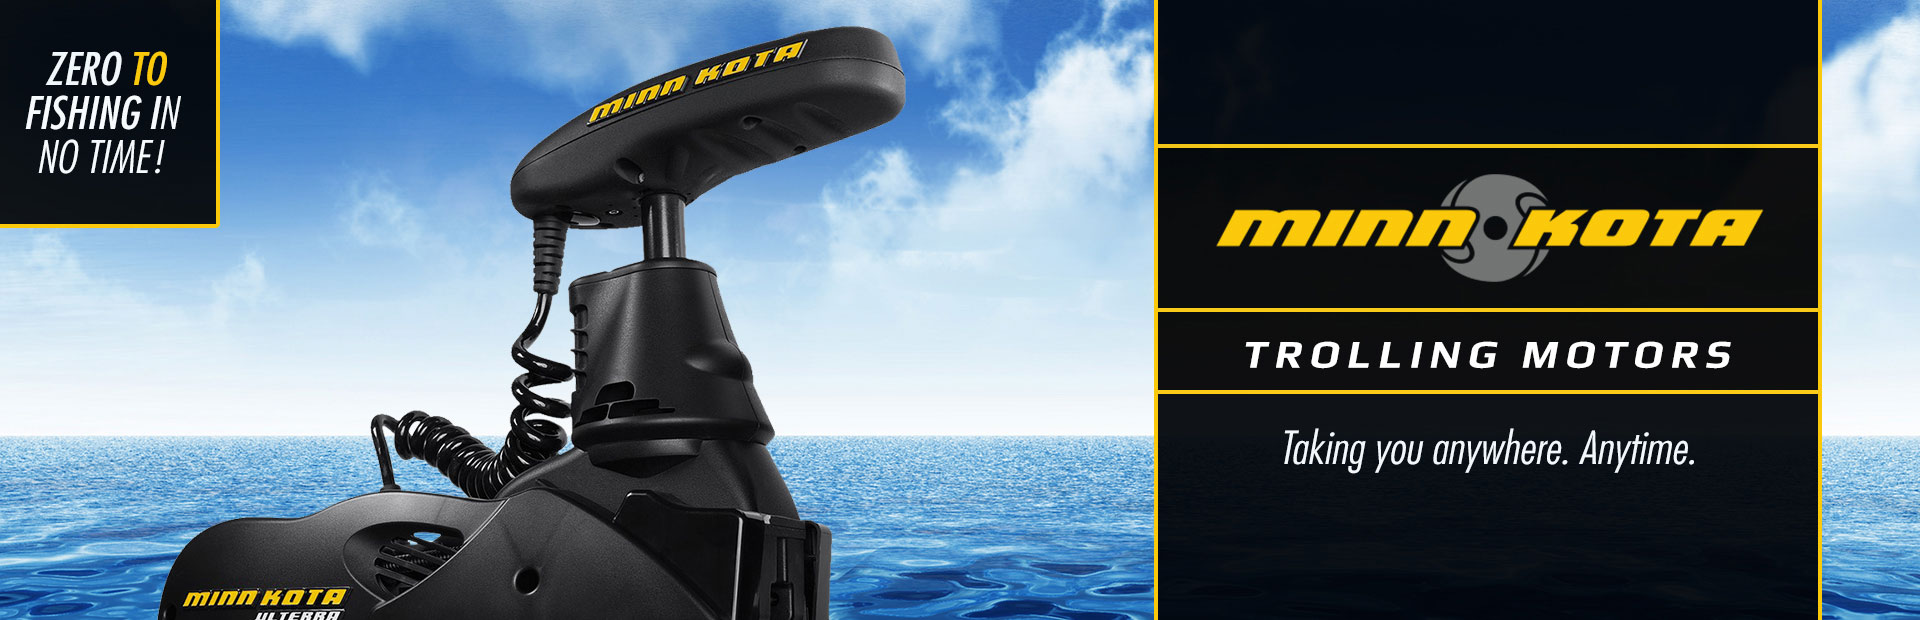 We carry Minn Kota trolling motors. Contact us for details.